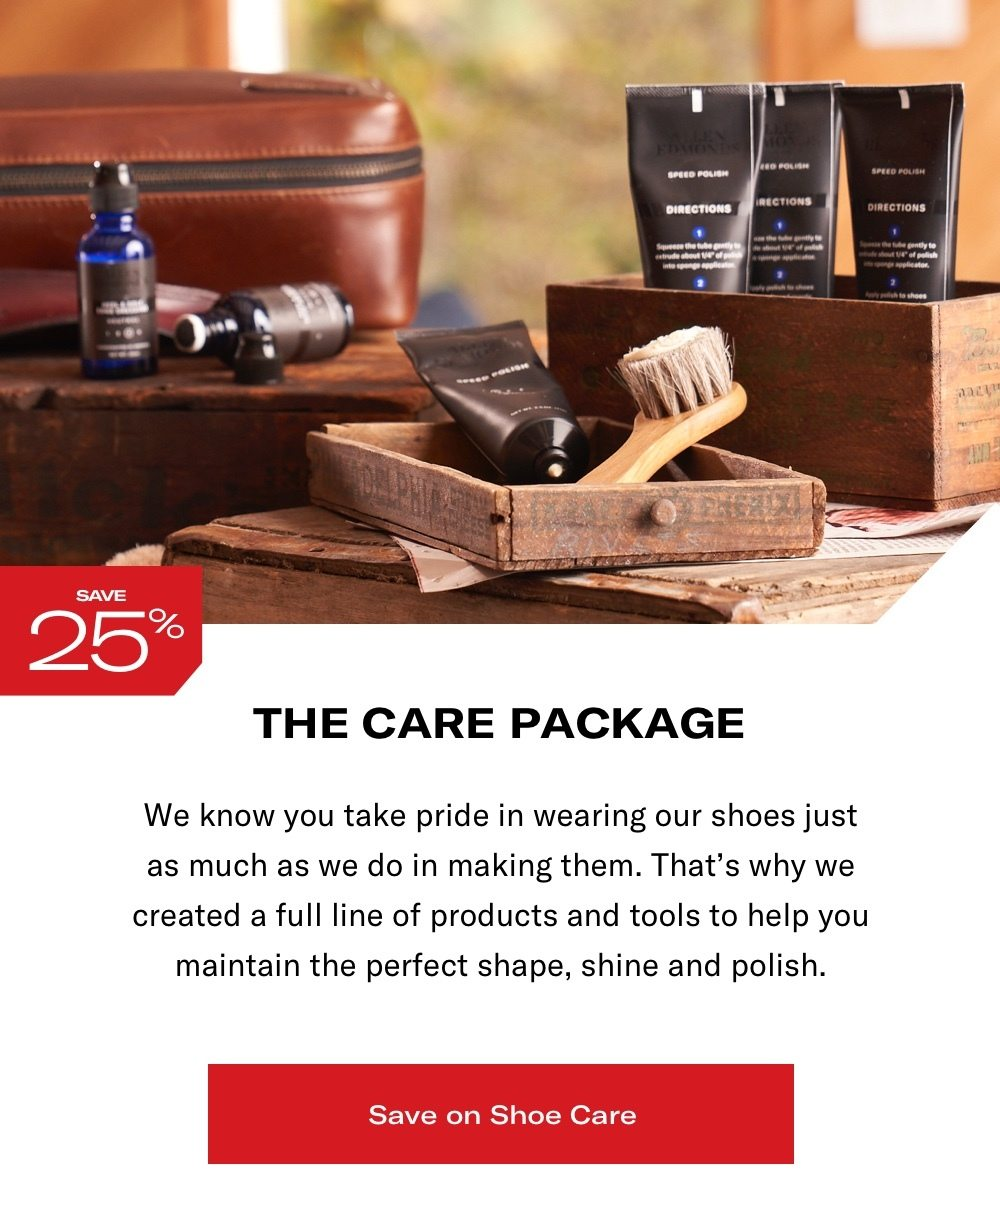 Save Up To 25% on Shoe Care